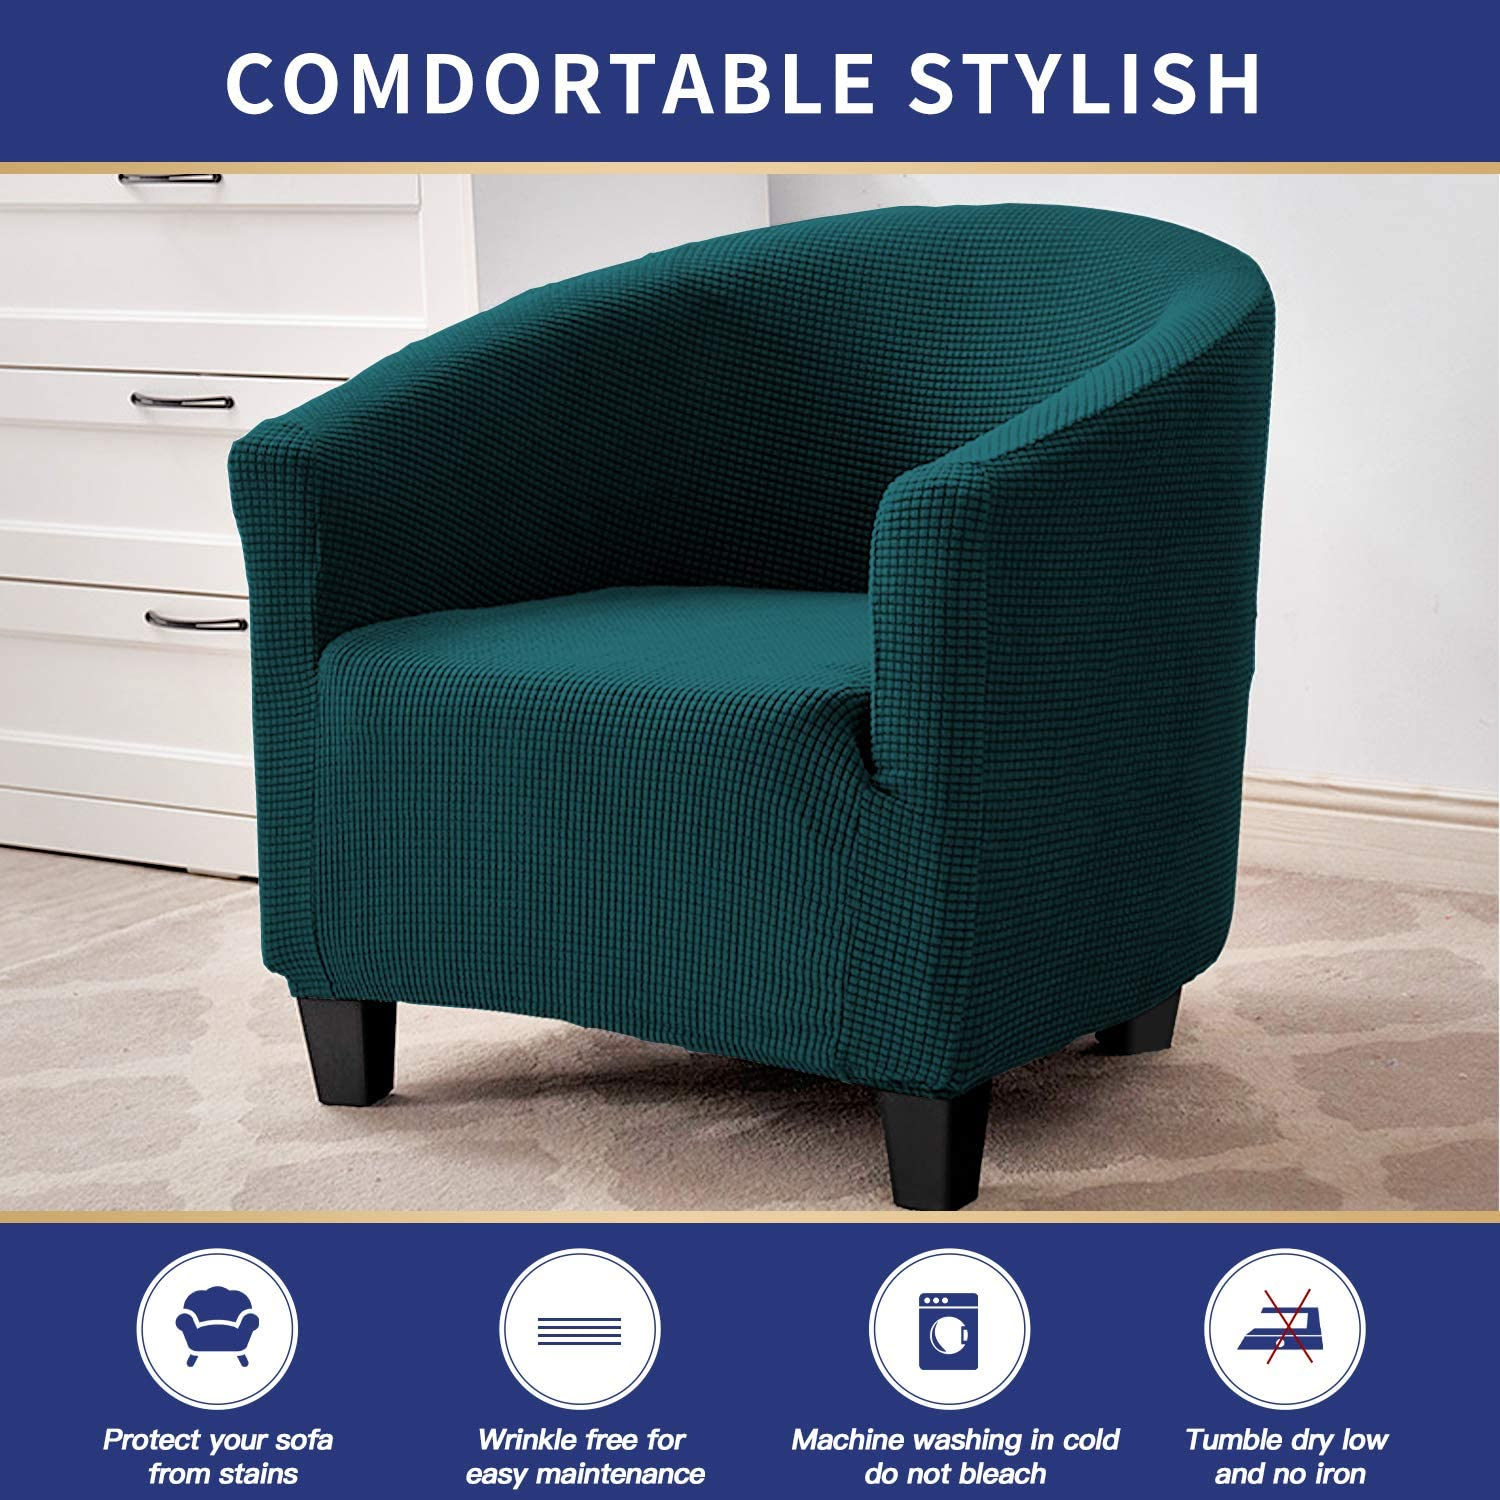 Club Chair,Dull Green ZC MALL Club Chair Slipcover,Stretch Armchair Cover,Sofa Cover Furniture Protector for Living Room Arm Chair Cover Jacquard Spandex Couch Covers